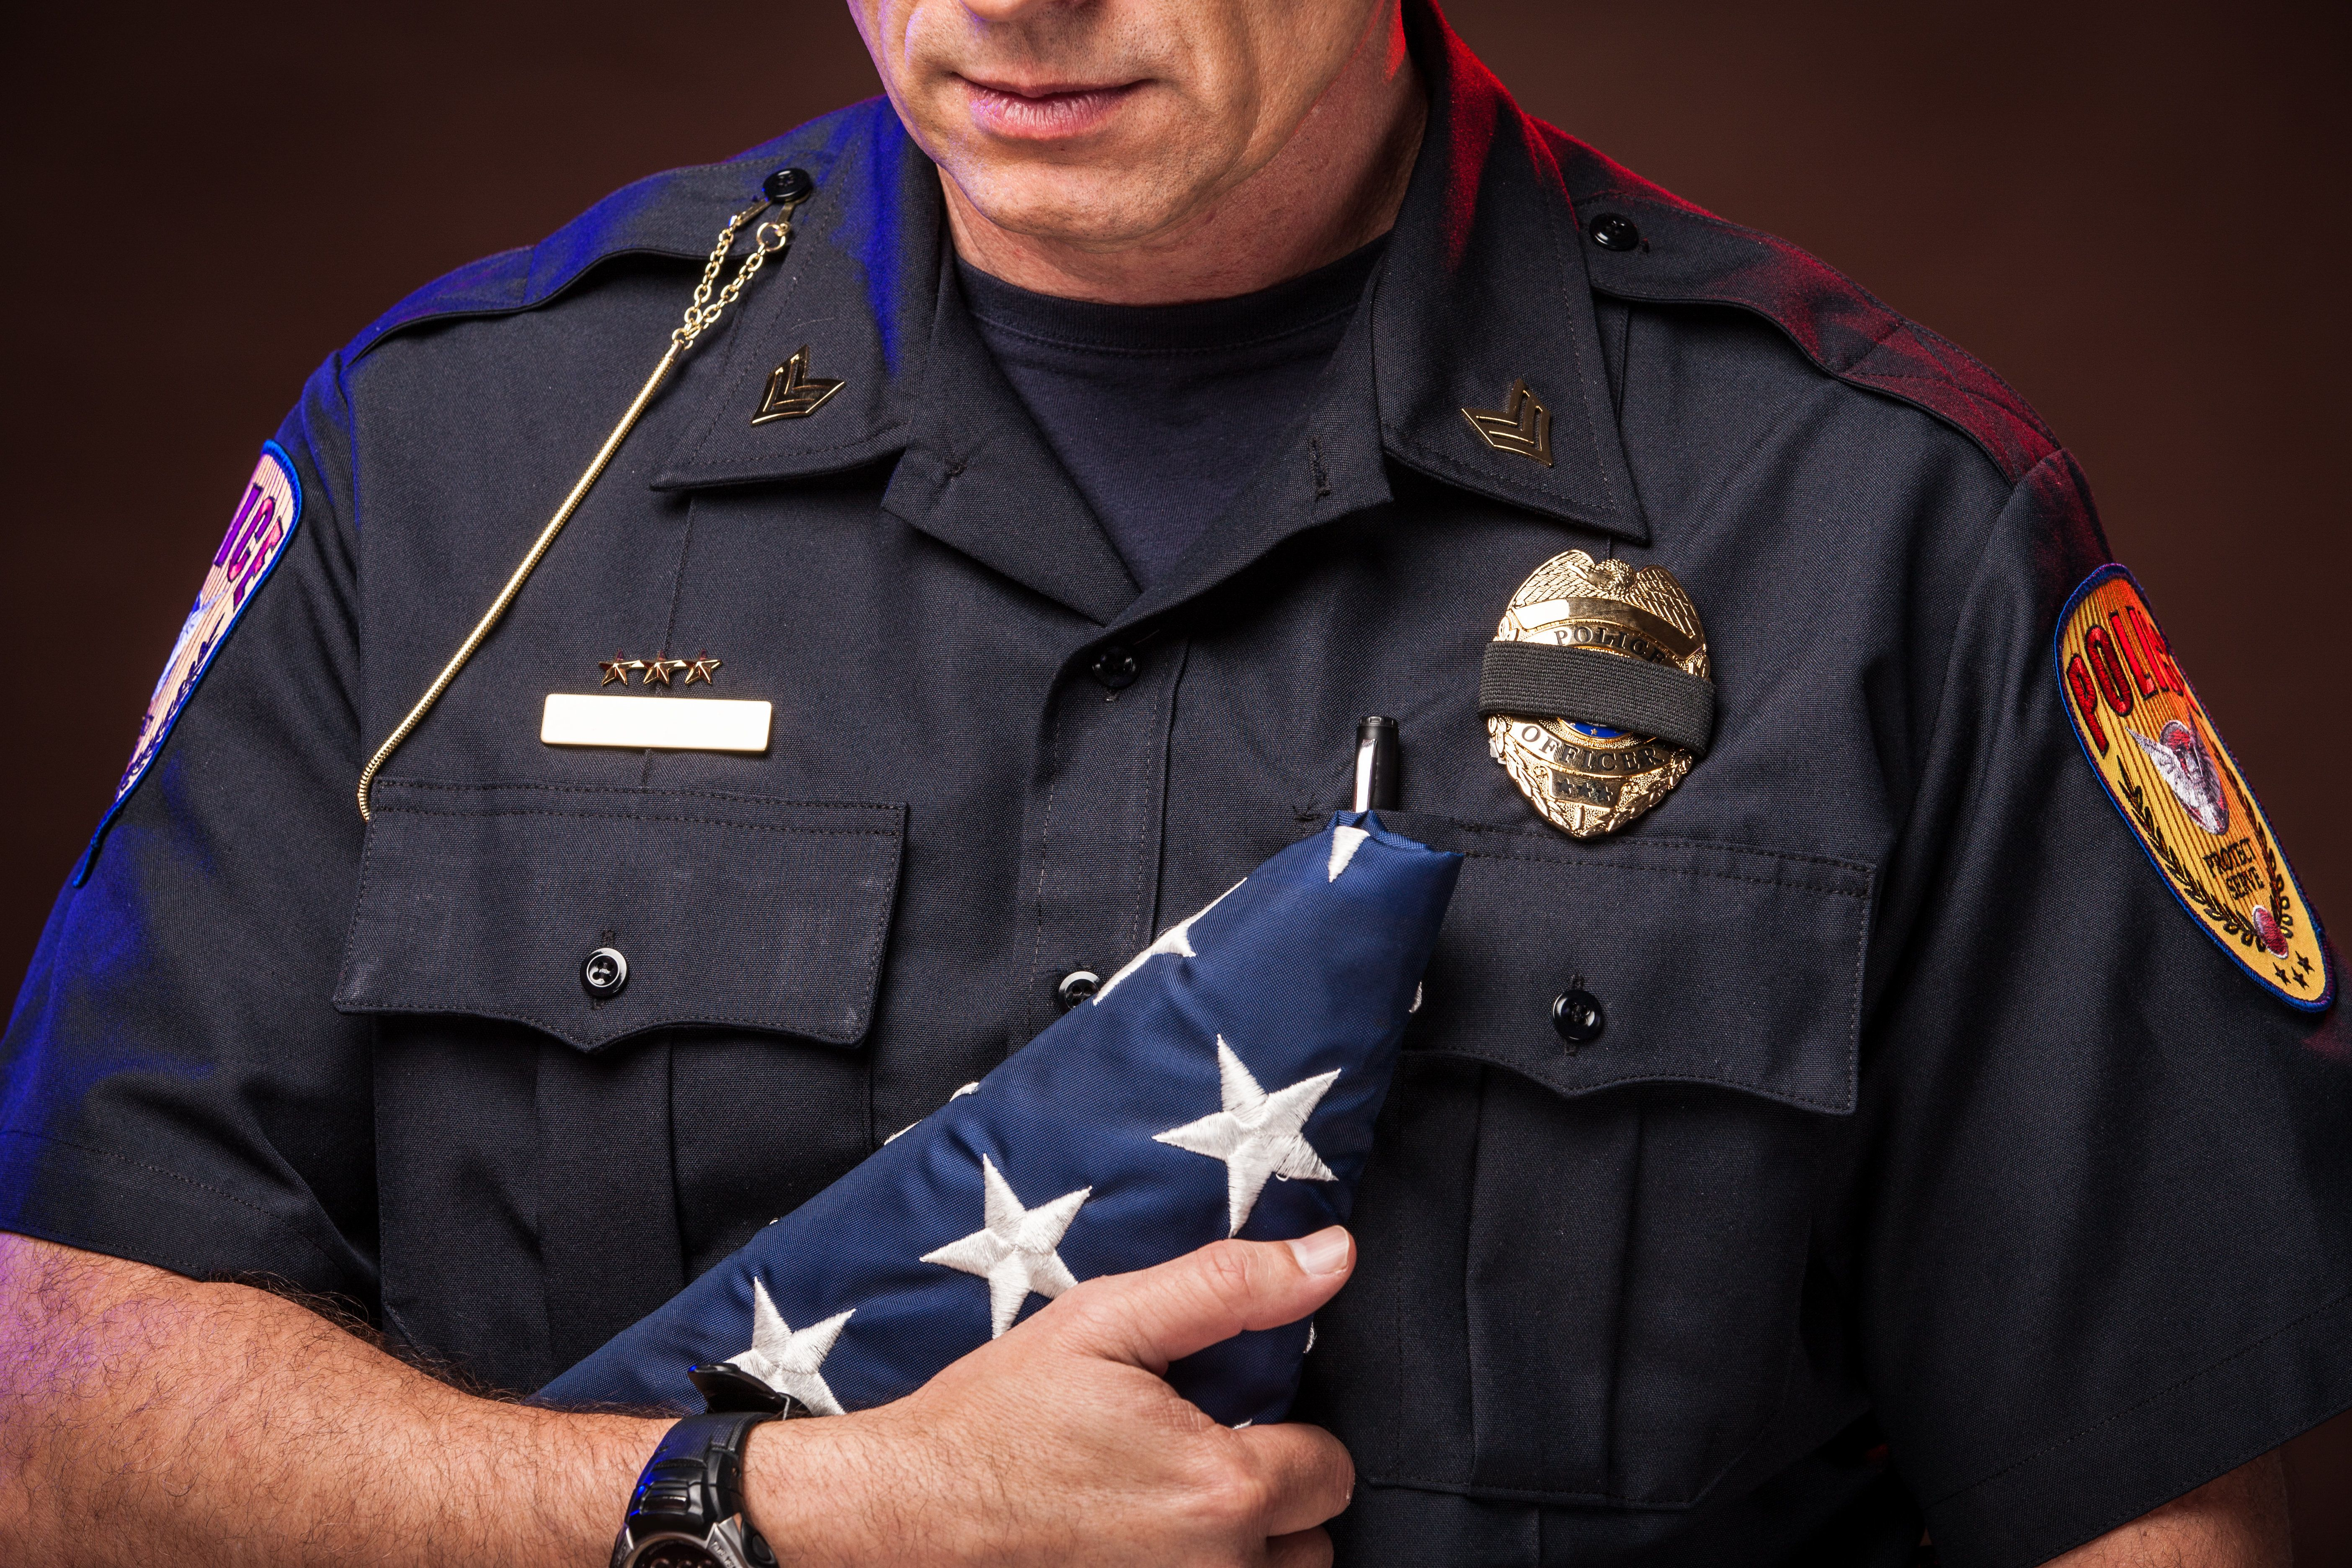 An authentic police officer in dark, moody lighting. Closeup of a male officer in uniform, holding a folded U.S. flag and looking down in respect, sorrow, and honor for a fallen comrade. A black band covers his badge to signify mourning the death of a fellow officer.